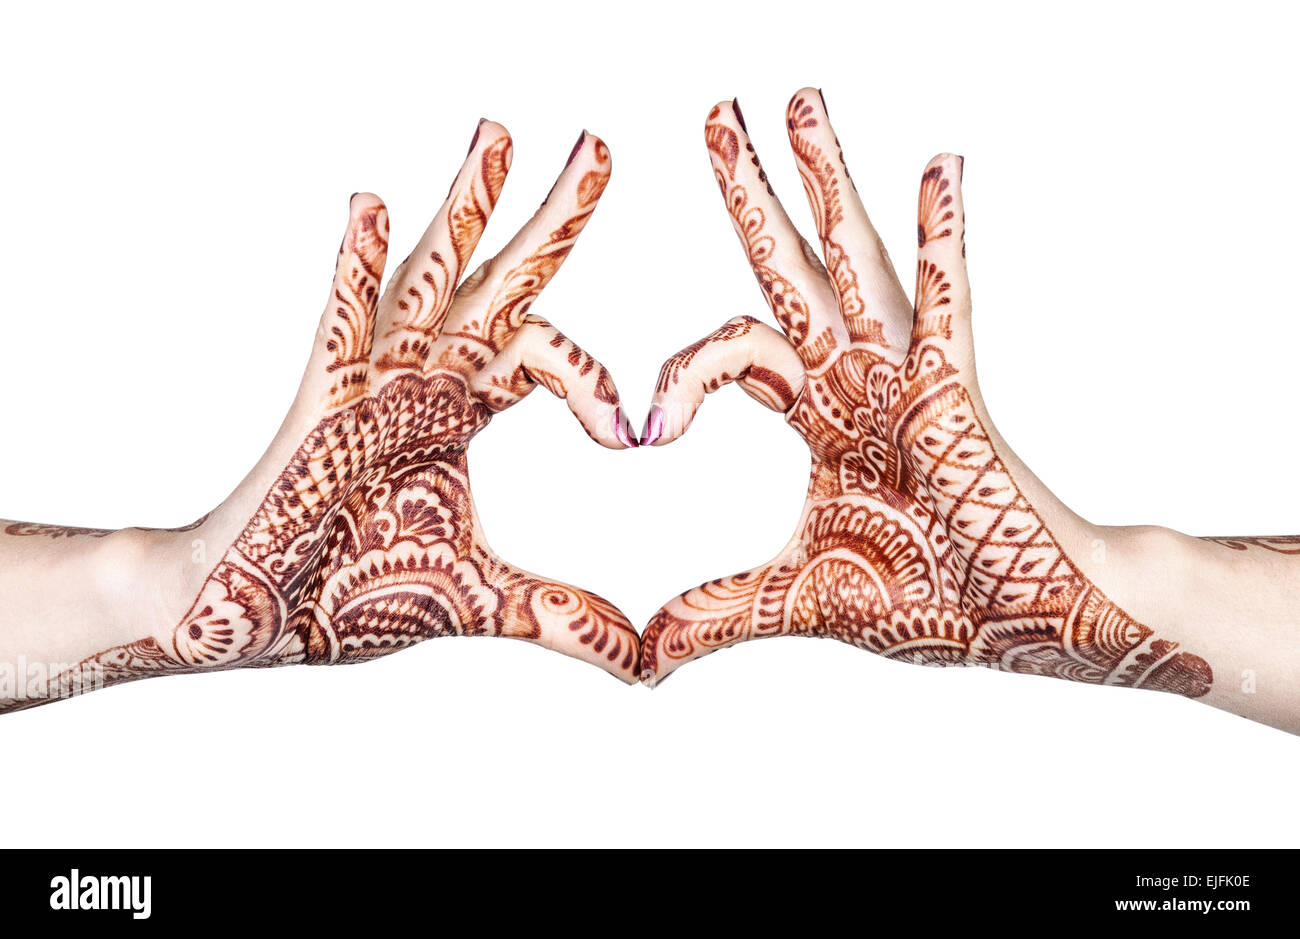 Woman hands with henna doing heart gesture isolated on white background with clipping path - Stock Image